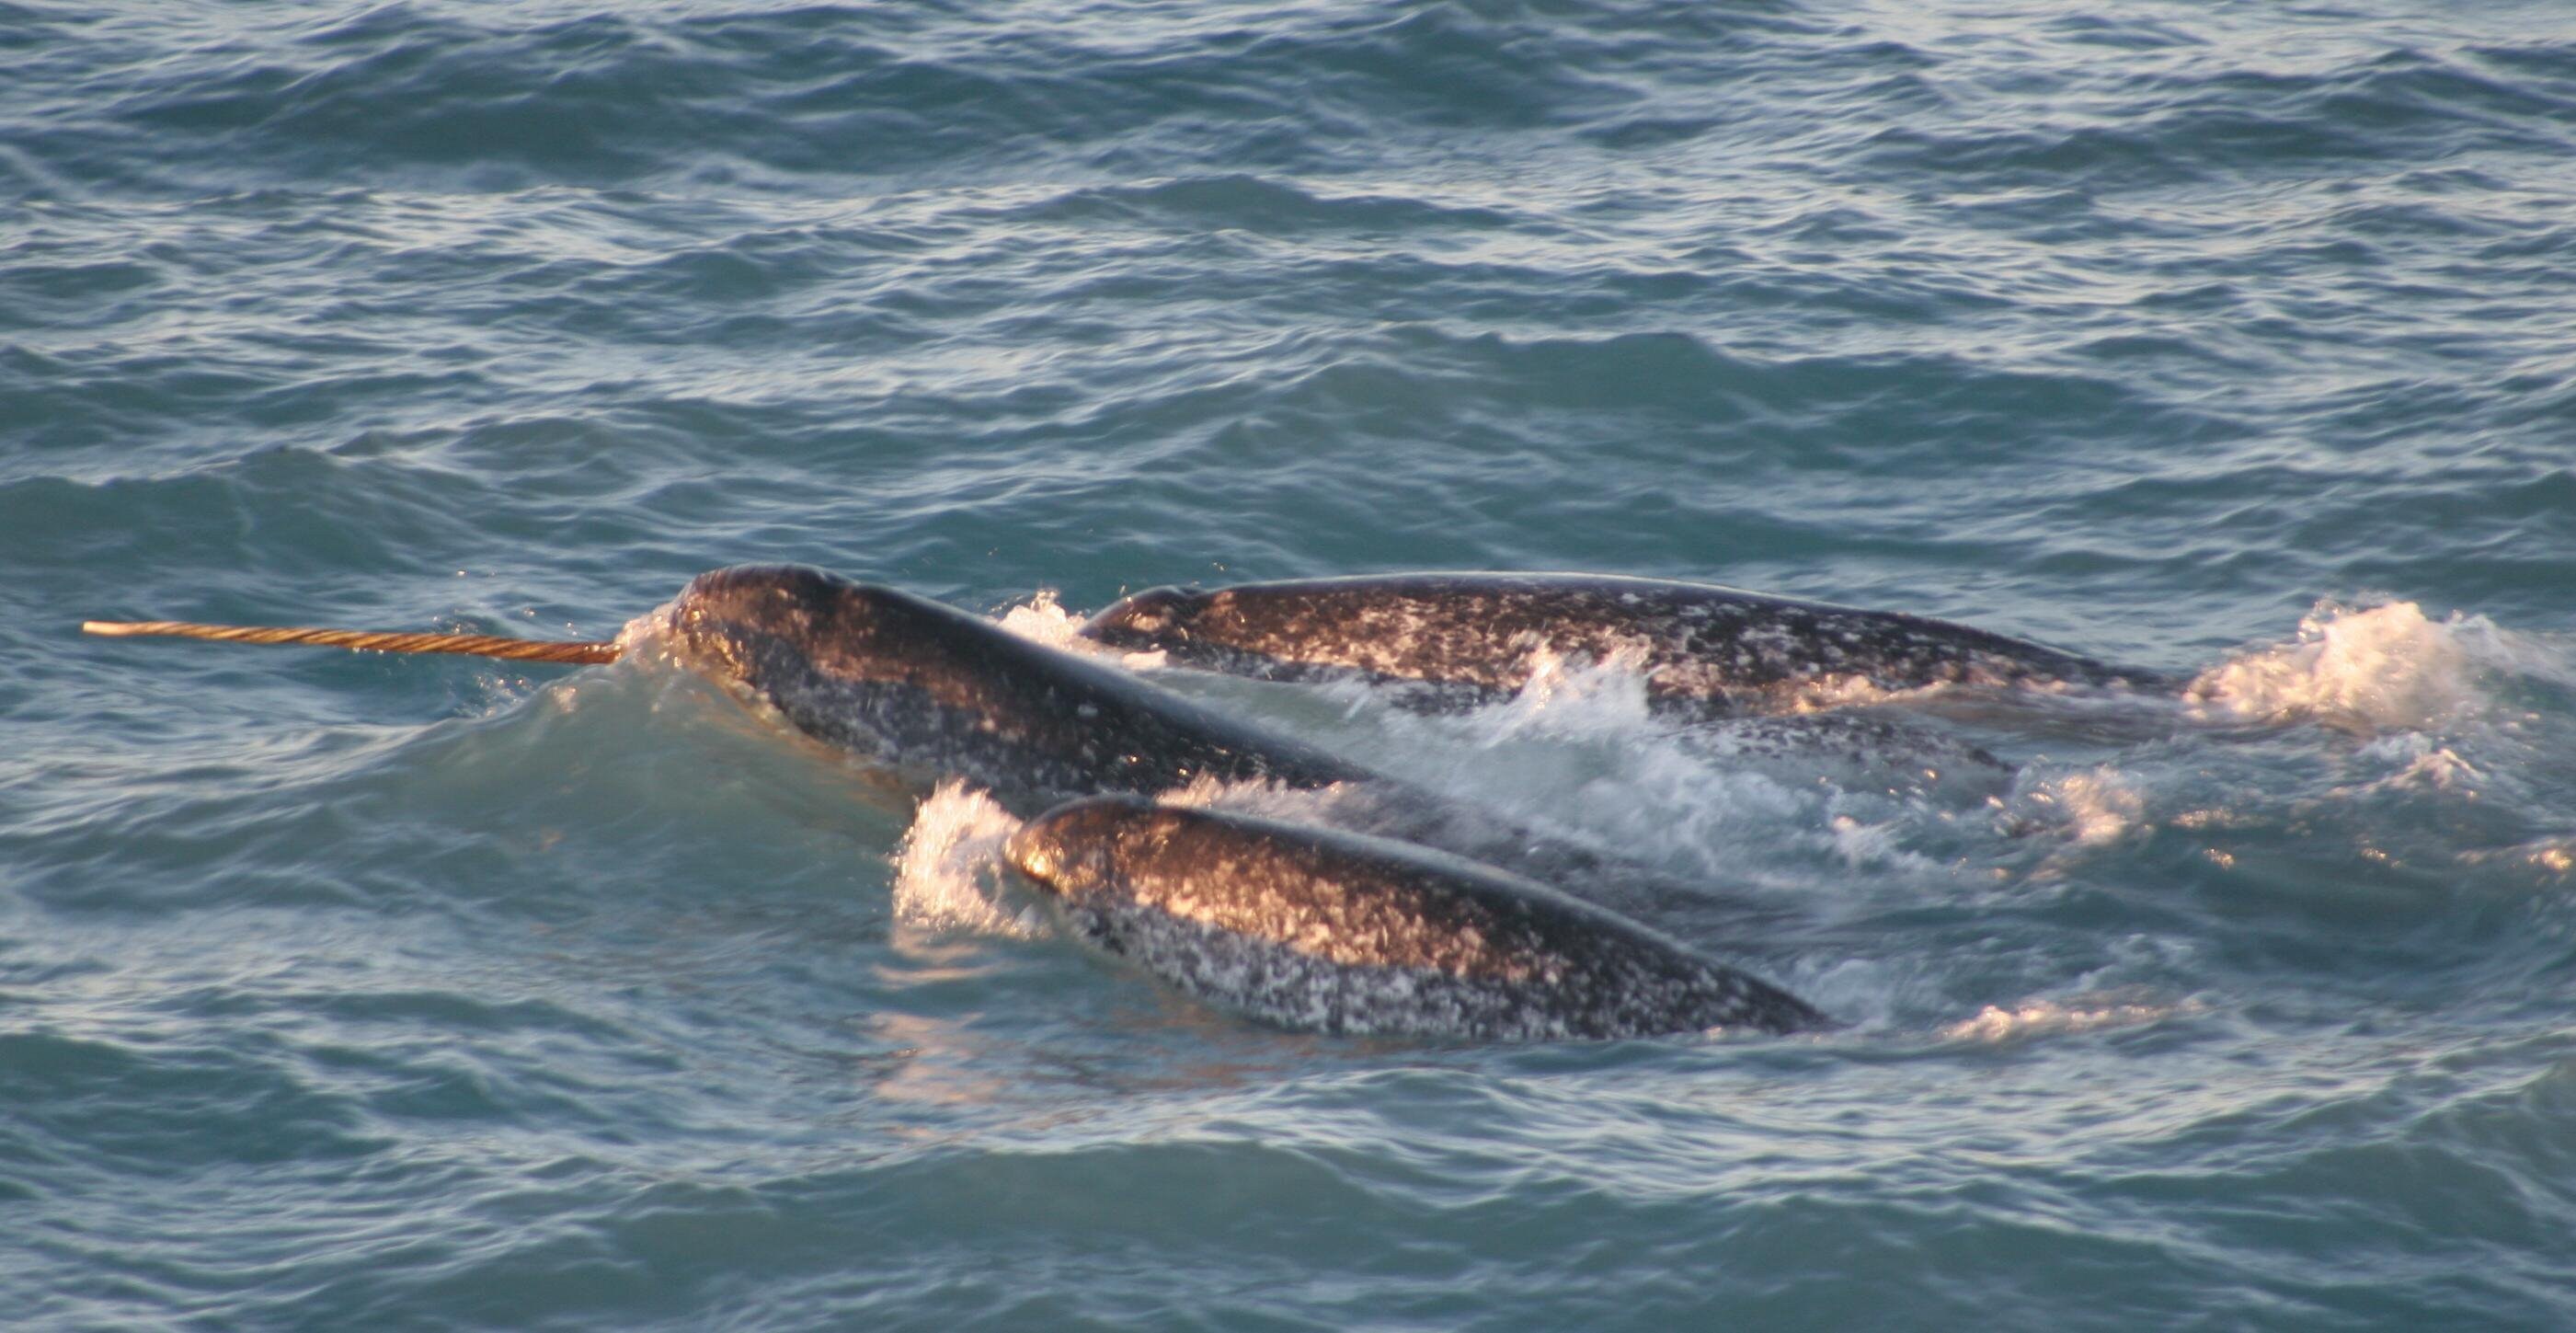 Pod of narwhals, northern Canada, August 2005 (Kristin Laidre / Polar Science Center Applied Physics Lab, University of Washington / NOAA)